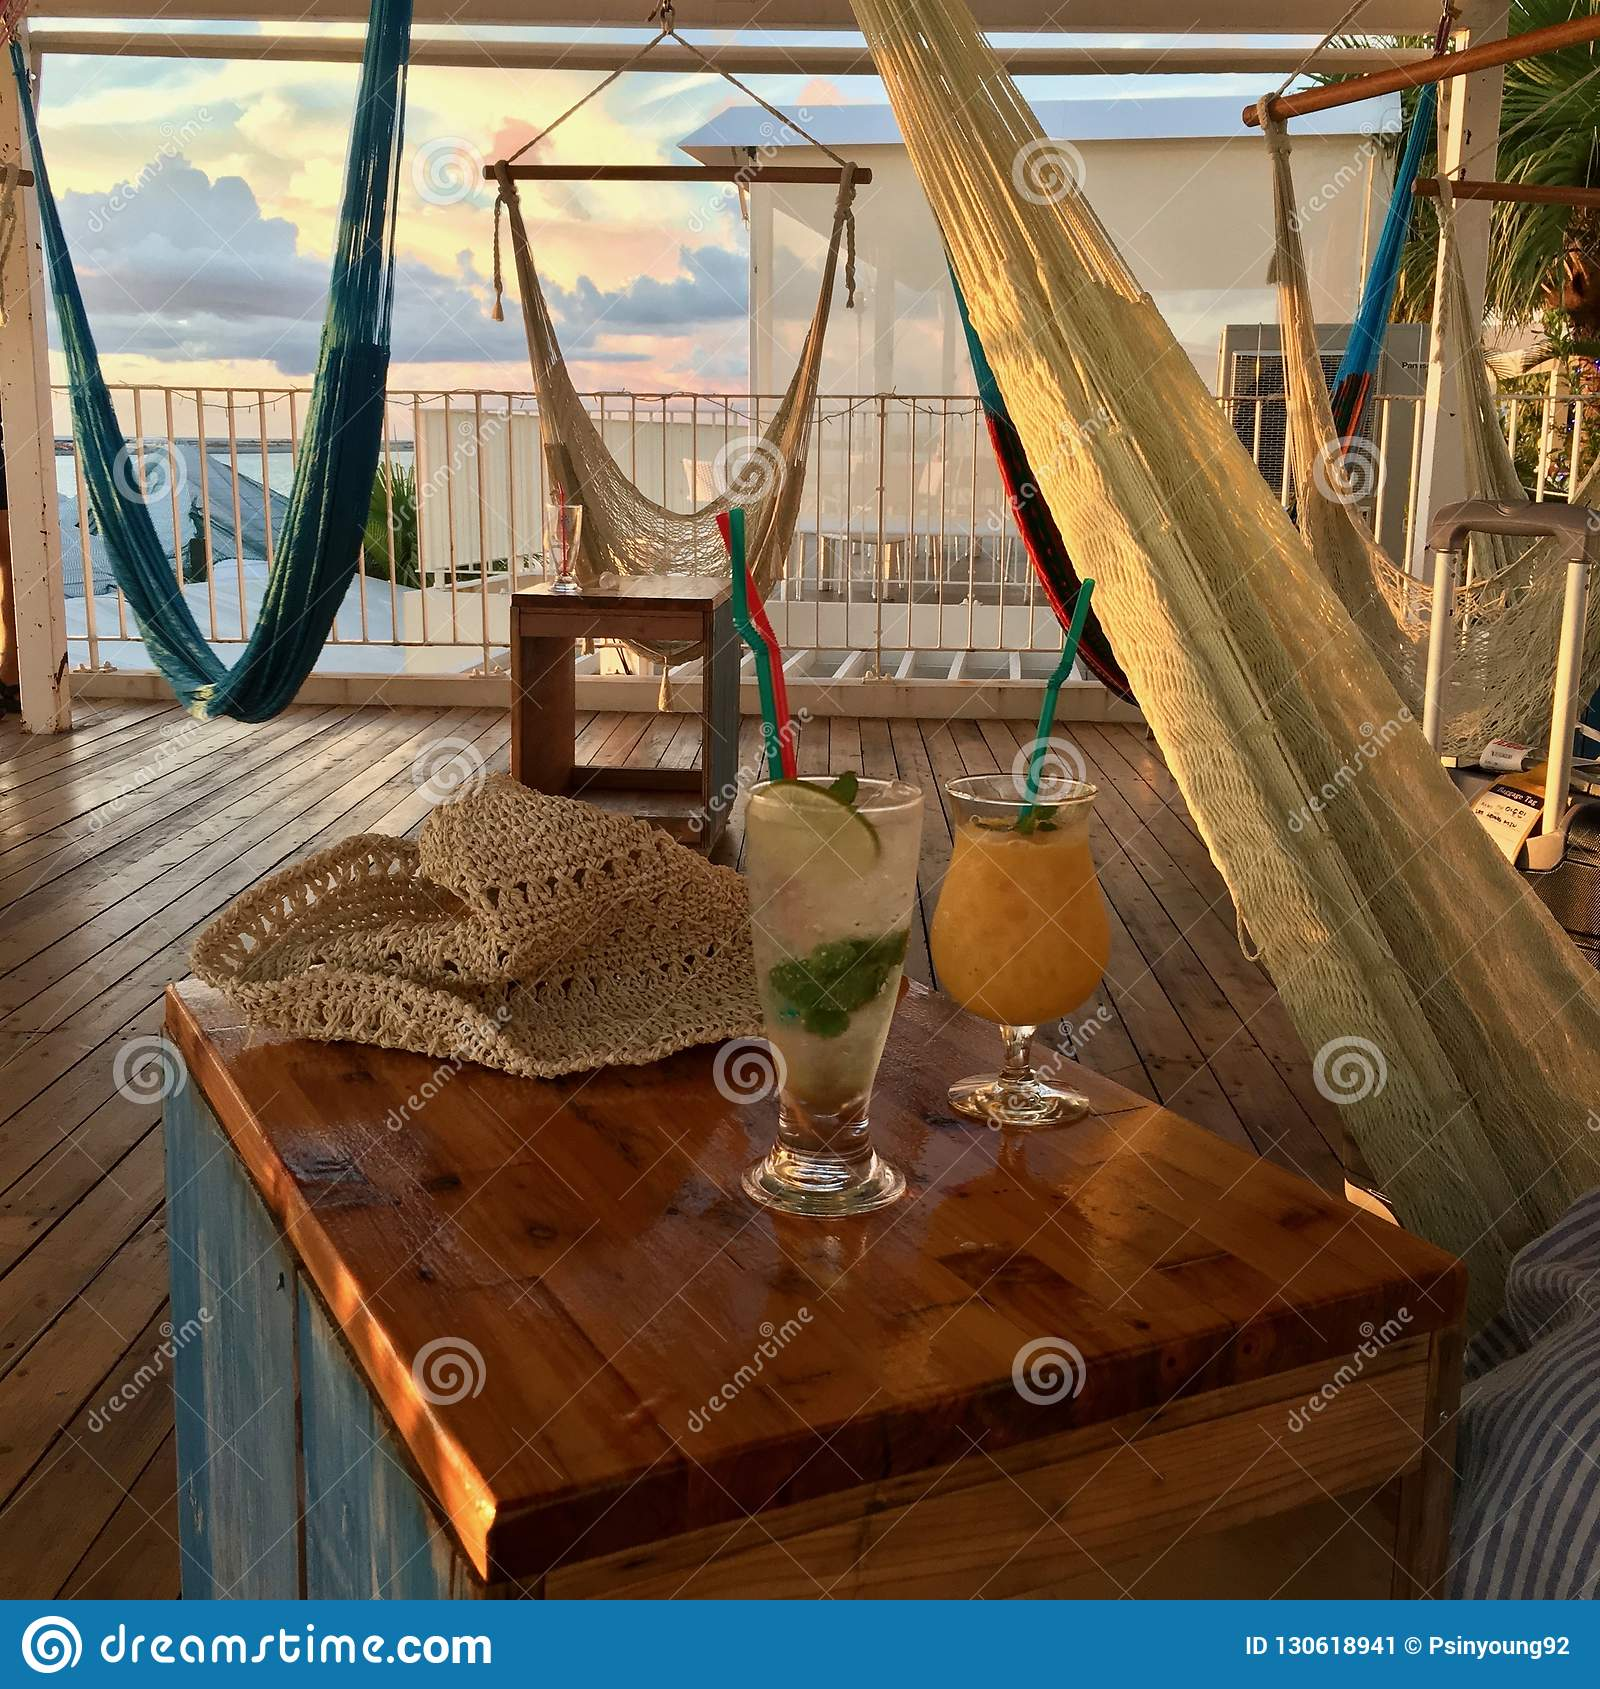 Cocktails & Hammocks & Hanging chairs - pure Relaxation in Japan